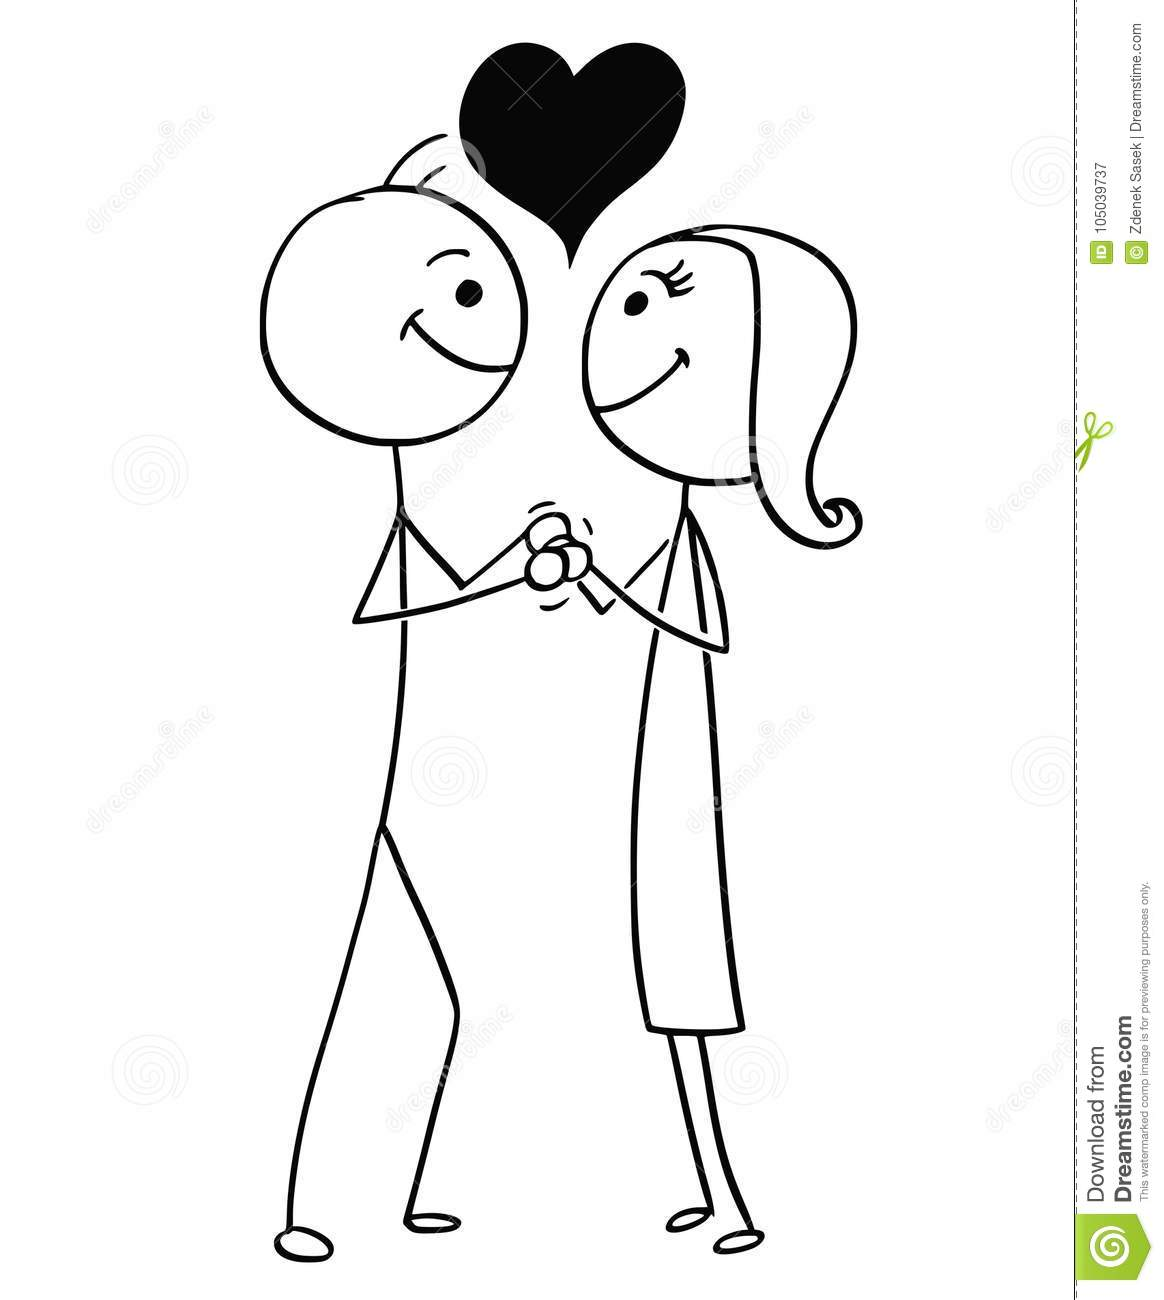 Love Each Other Cartoon: Vector Stick Man Cartoon Of Man And Woman In Love Stock